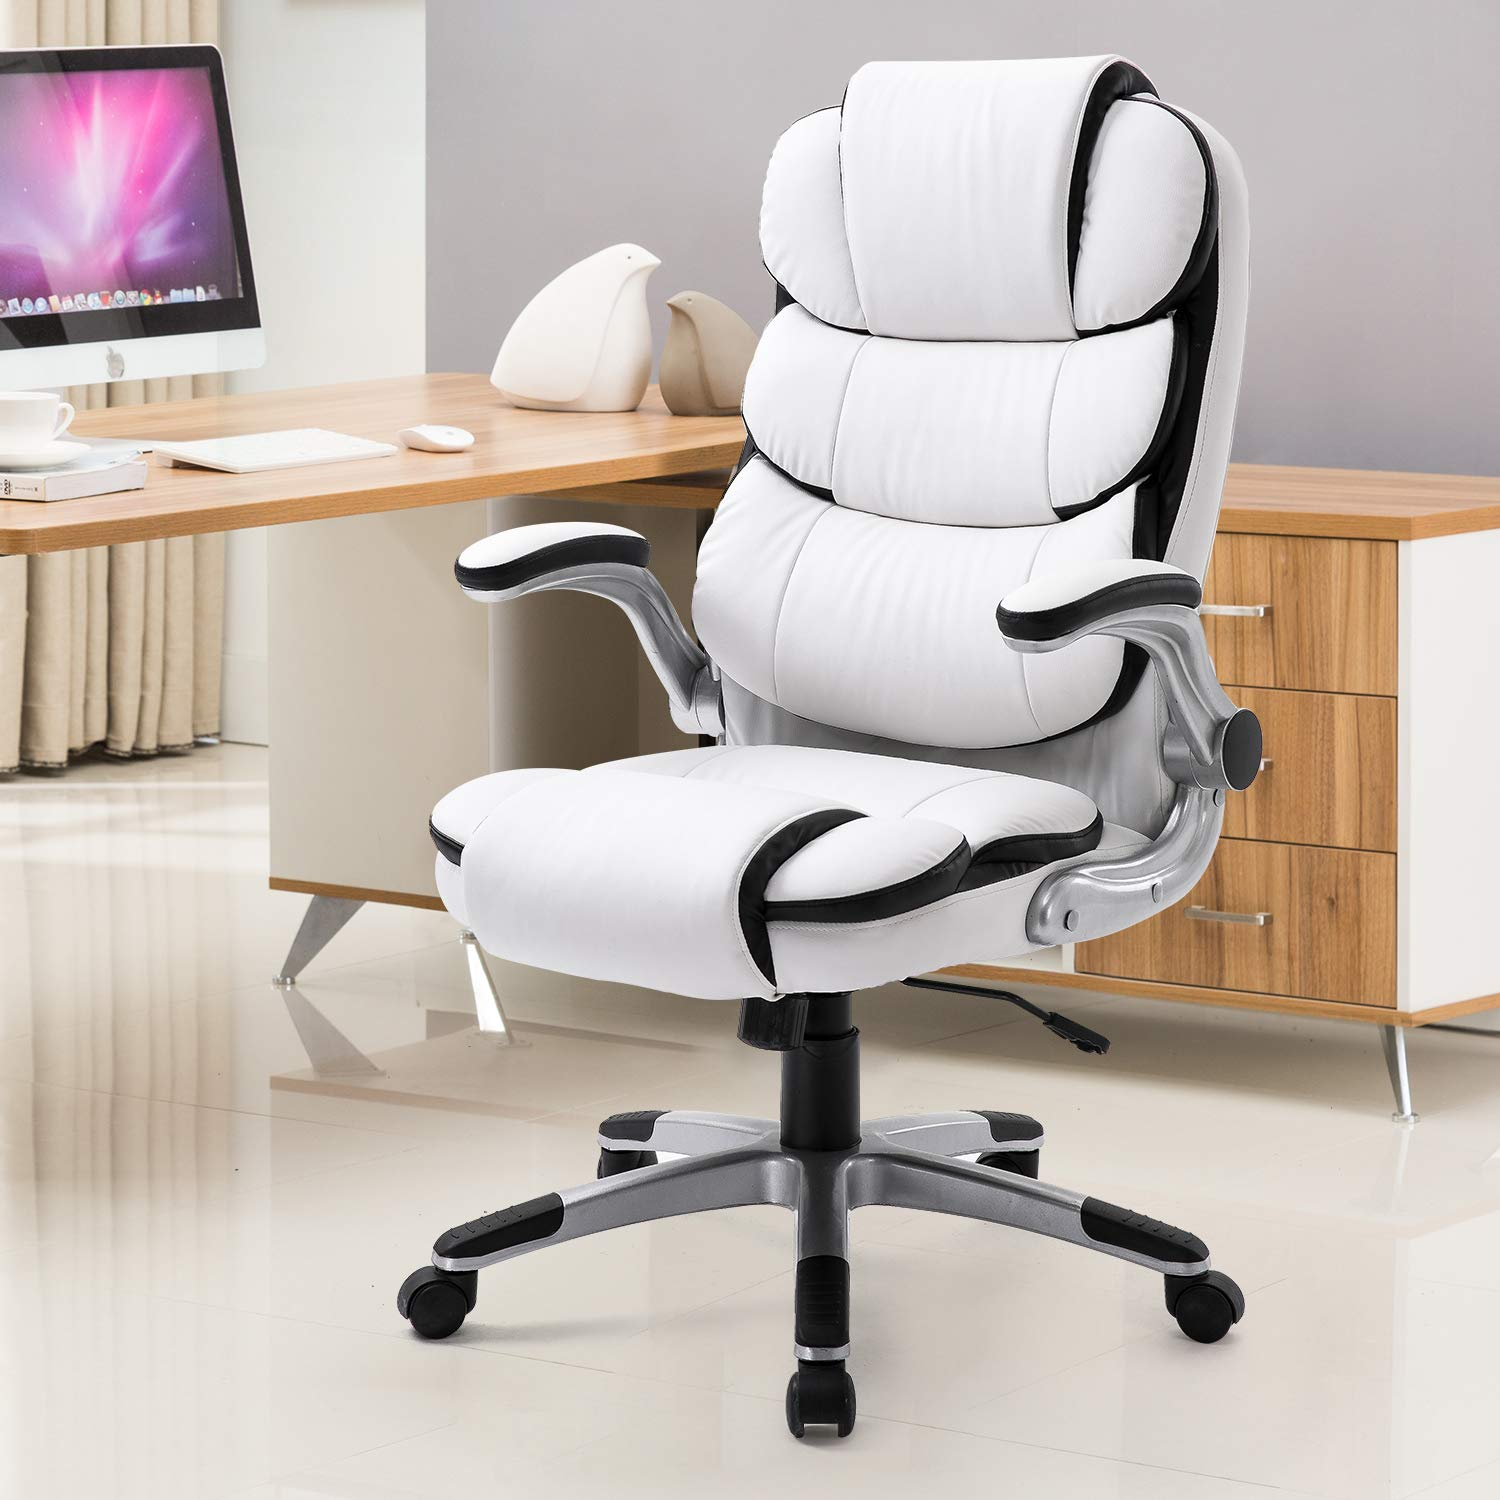 YAMASORO High-Back Executive Office Chair Leather, Adjustable Ergonomic Swivel Computer Desk Chair with Flip-up Armrest,Back Support for Working, Studying (White)